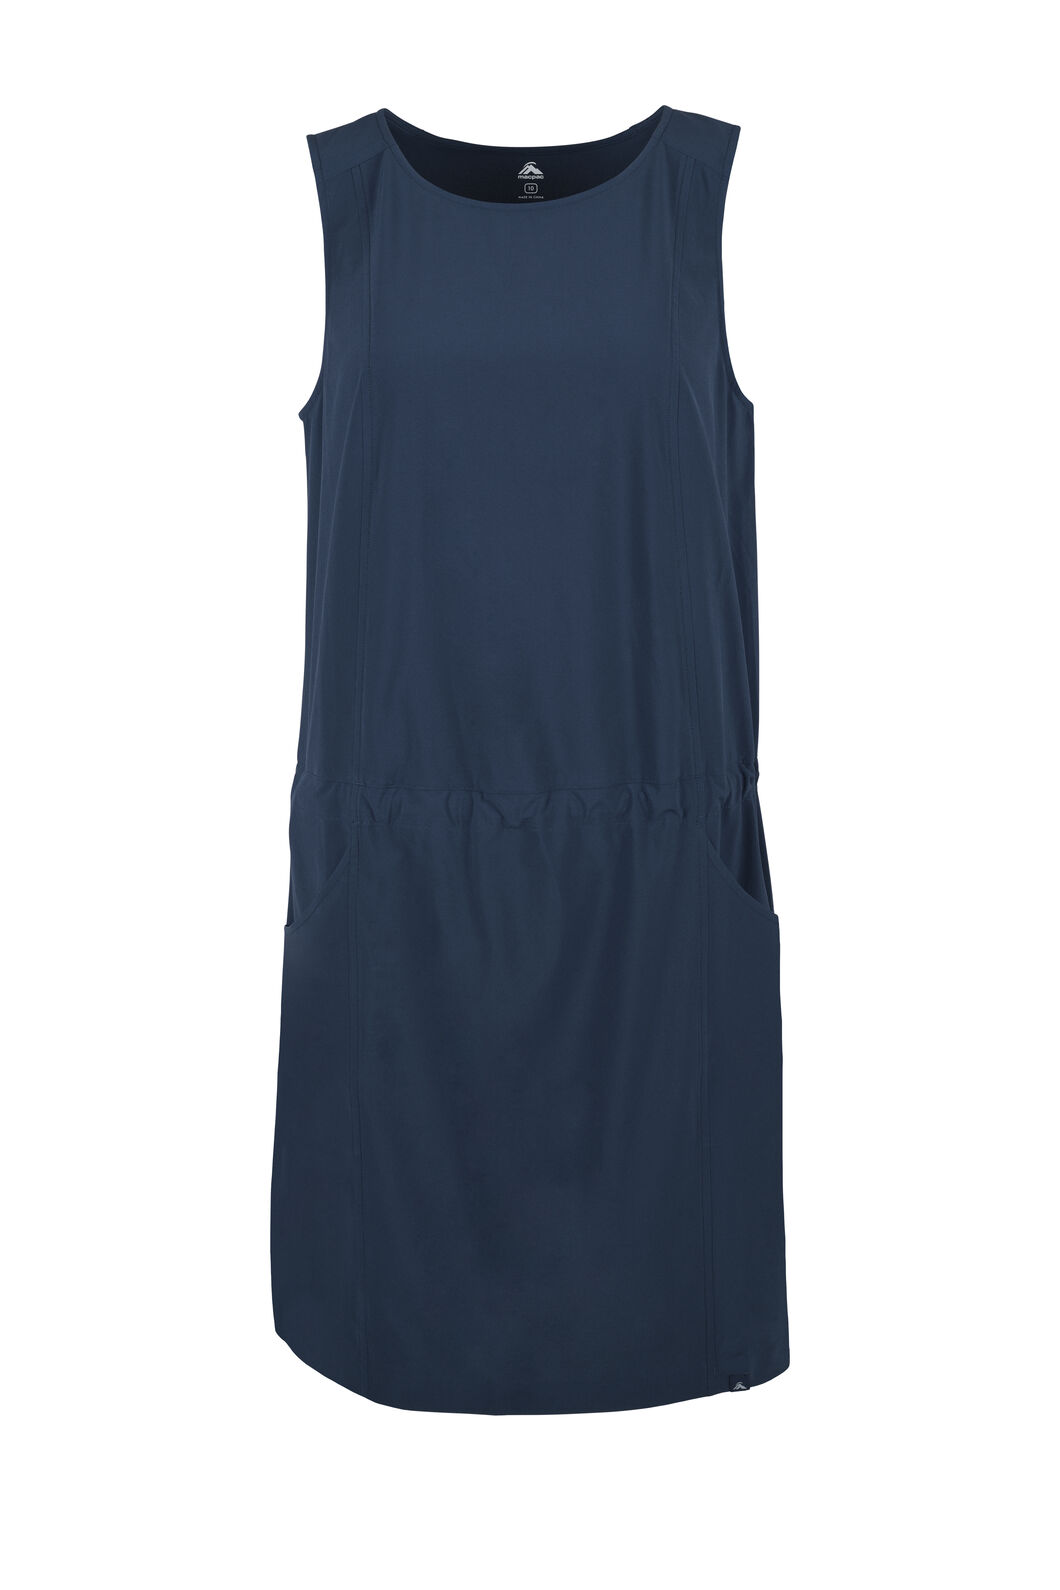 Macpac Mica Dress - Women's, Black Iris, hi-res